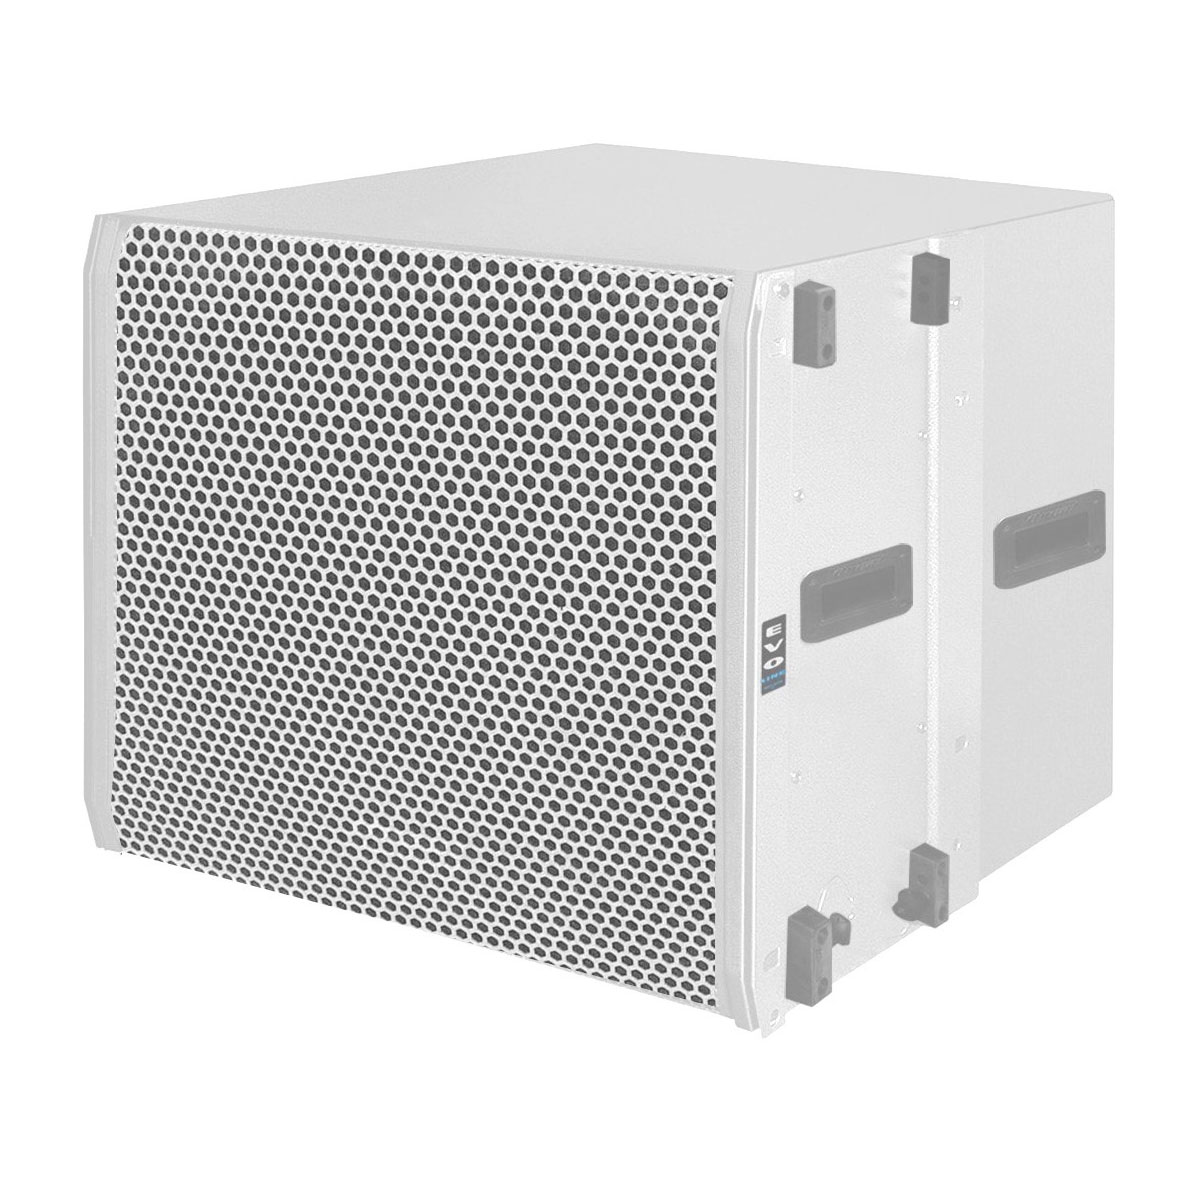 Subwoofer Ativo Line Array 600W OLS 1018 Branco - Oneal